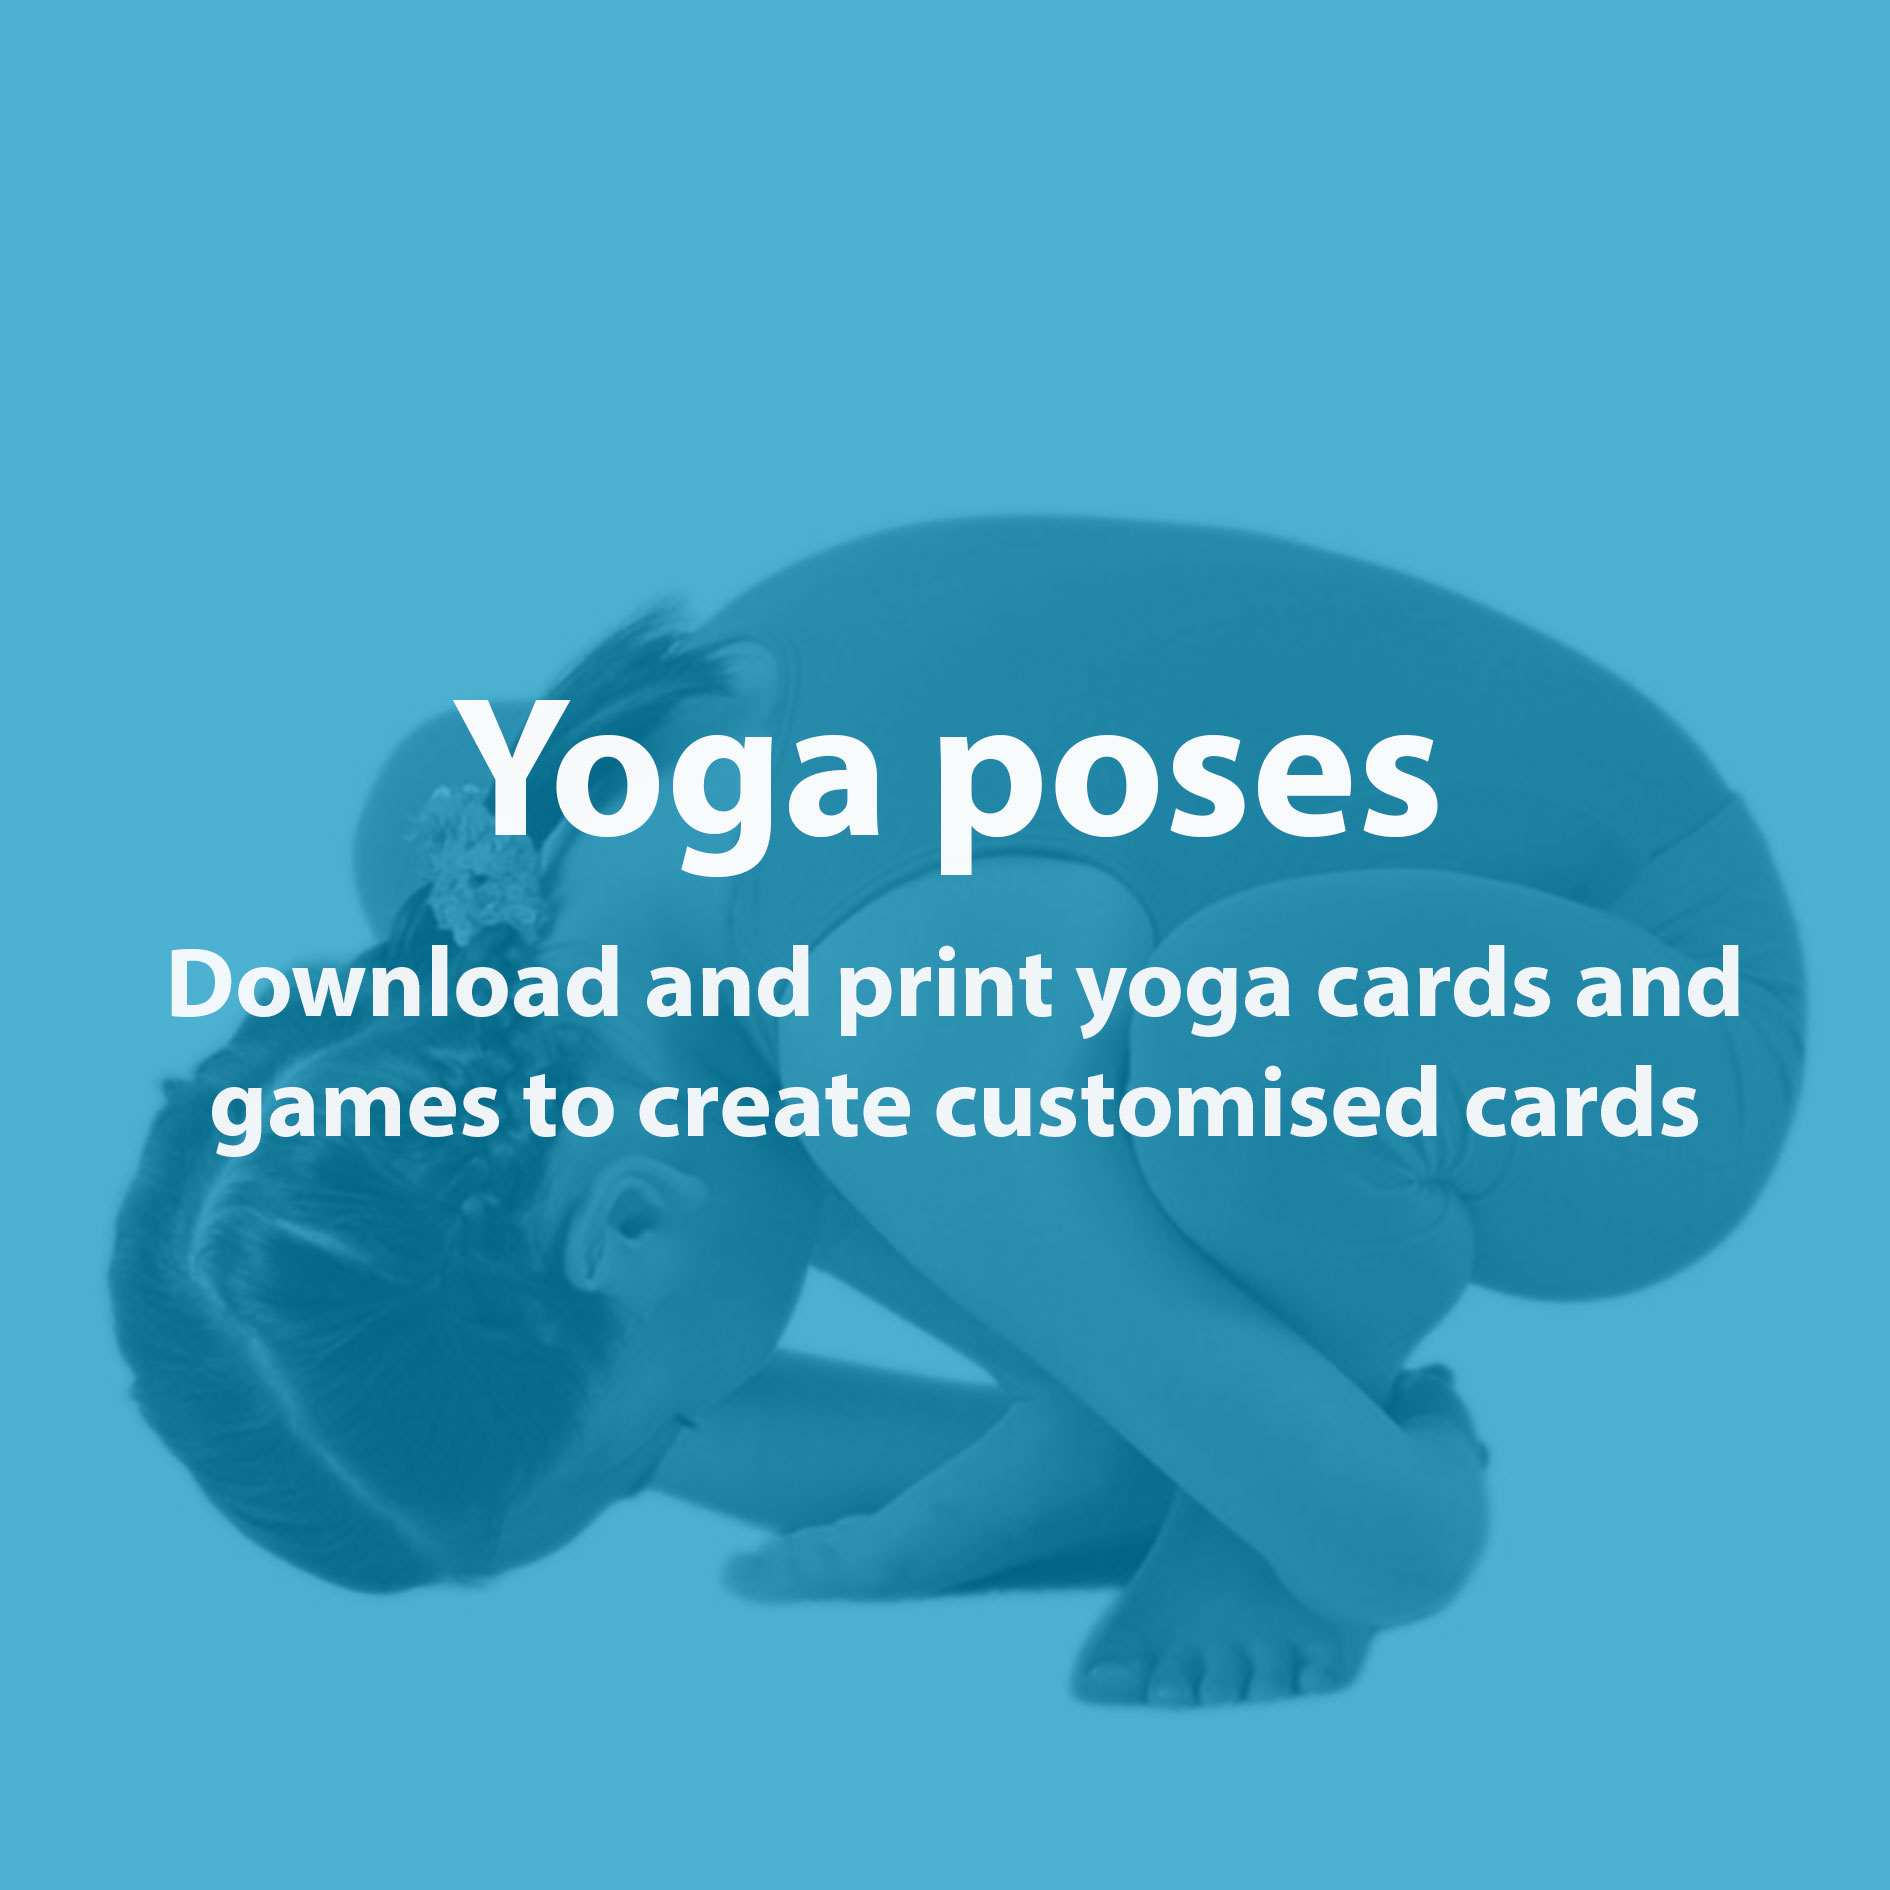 Save on postage when you download and print yoga games and poses to create customised cards.